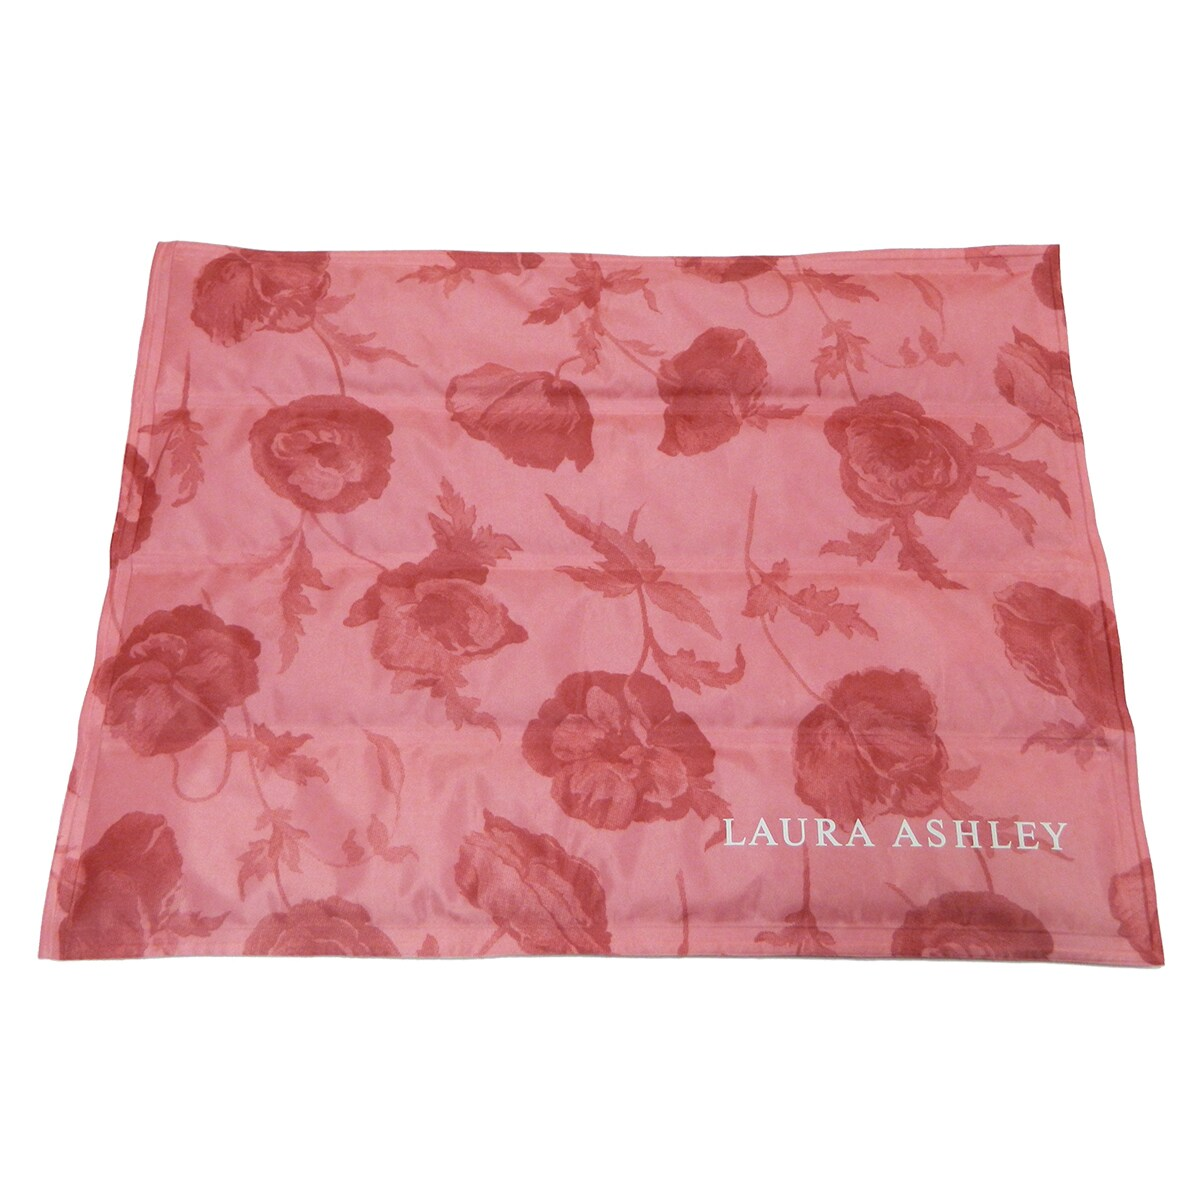 Laura Ashley Printed Therapeutic Cooling Gel Mat Small Pe...